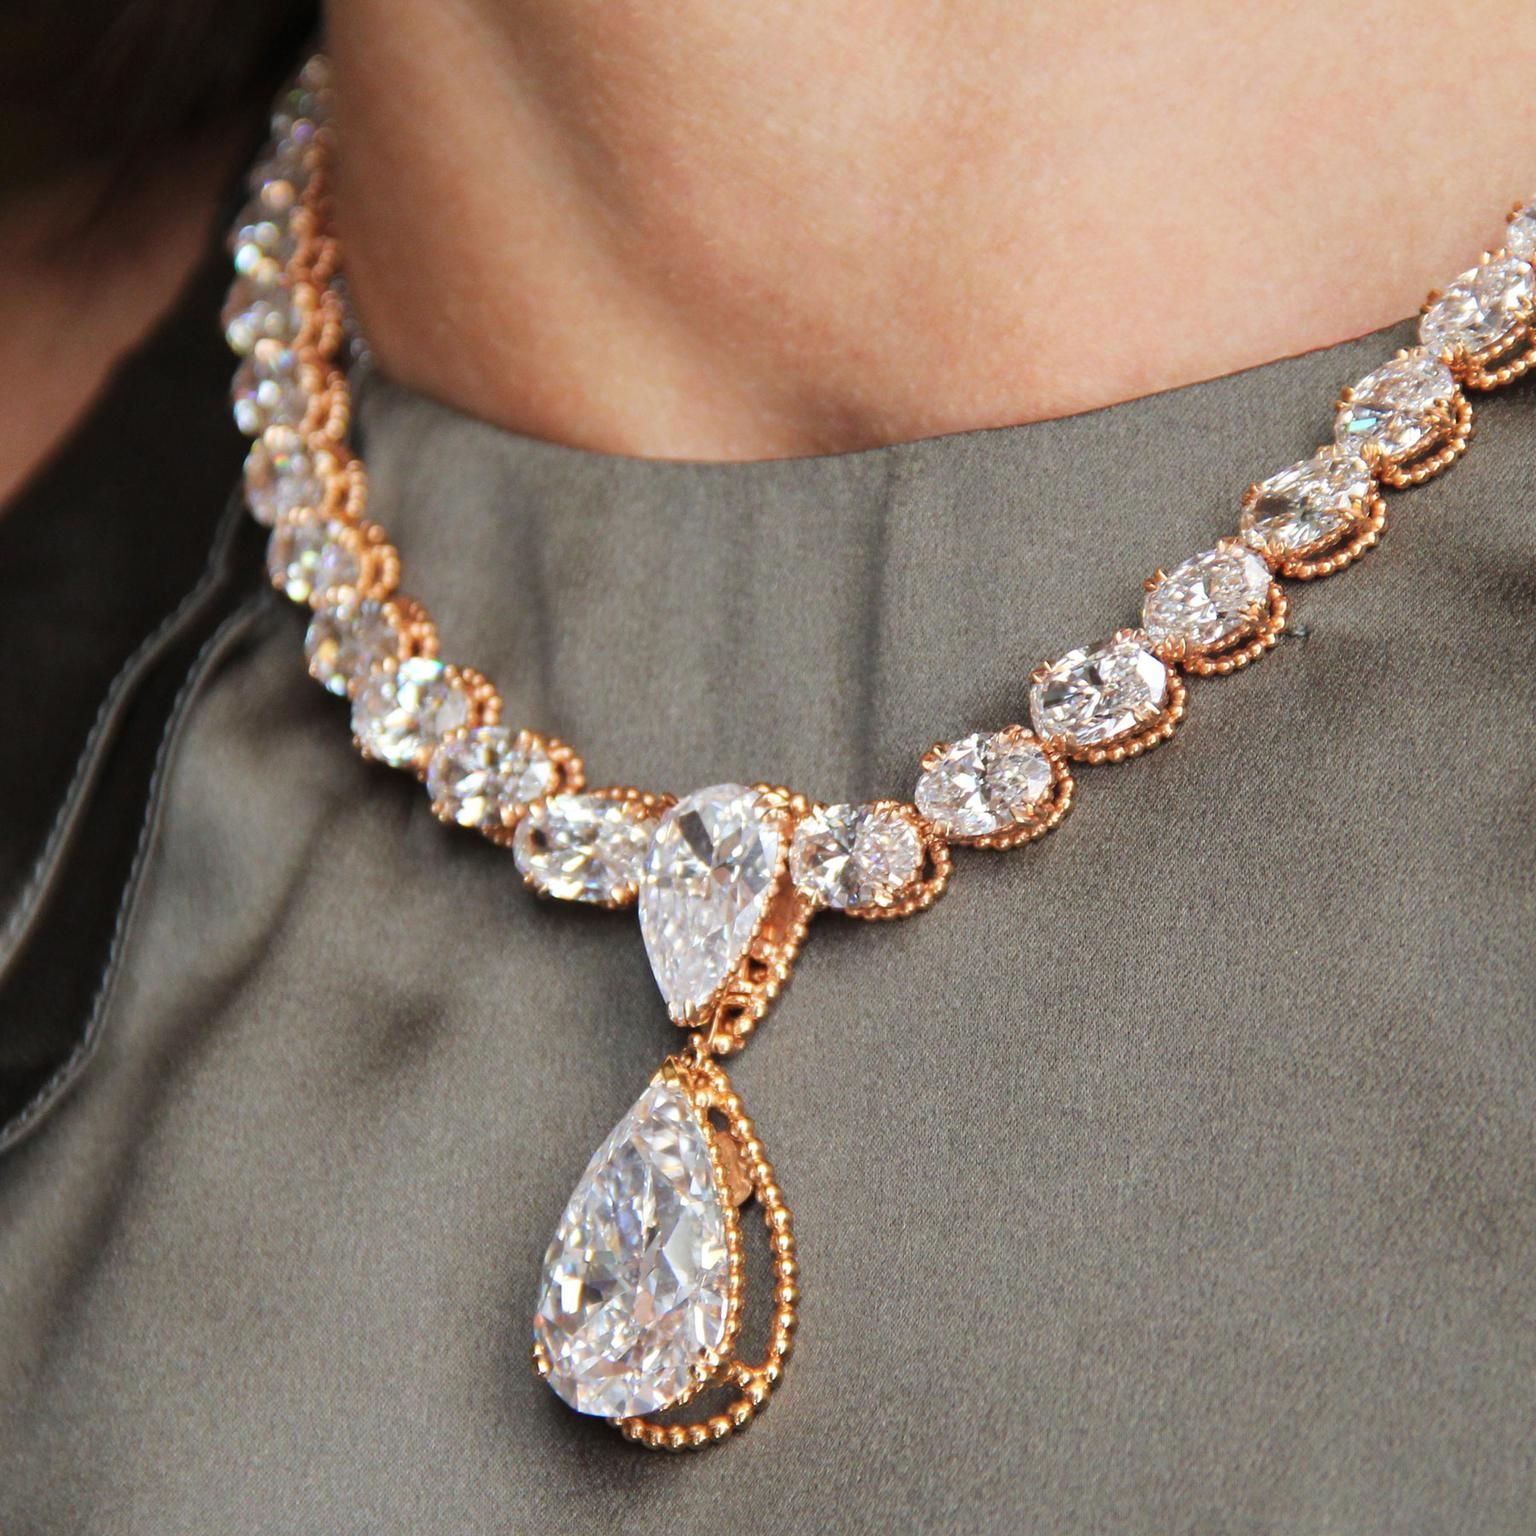 Alexandre Reza high jewellery diamond necklace